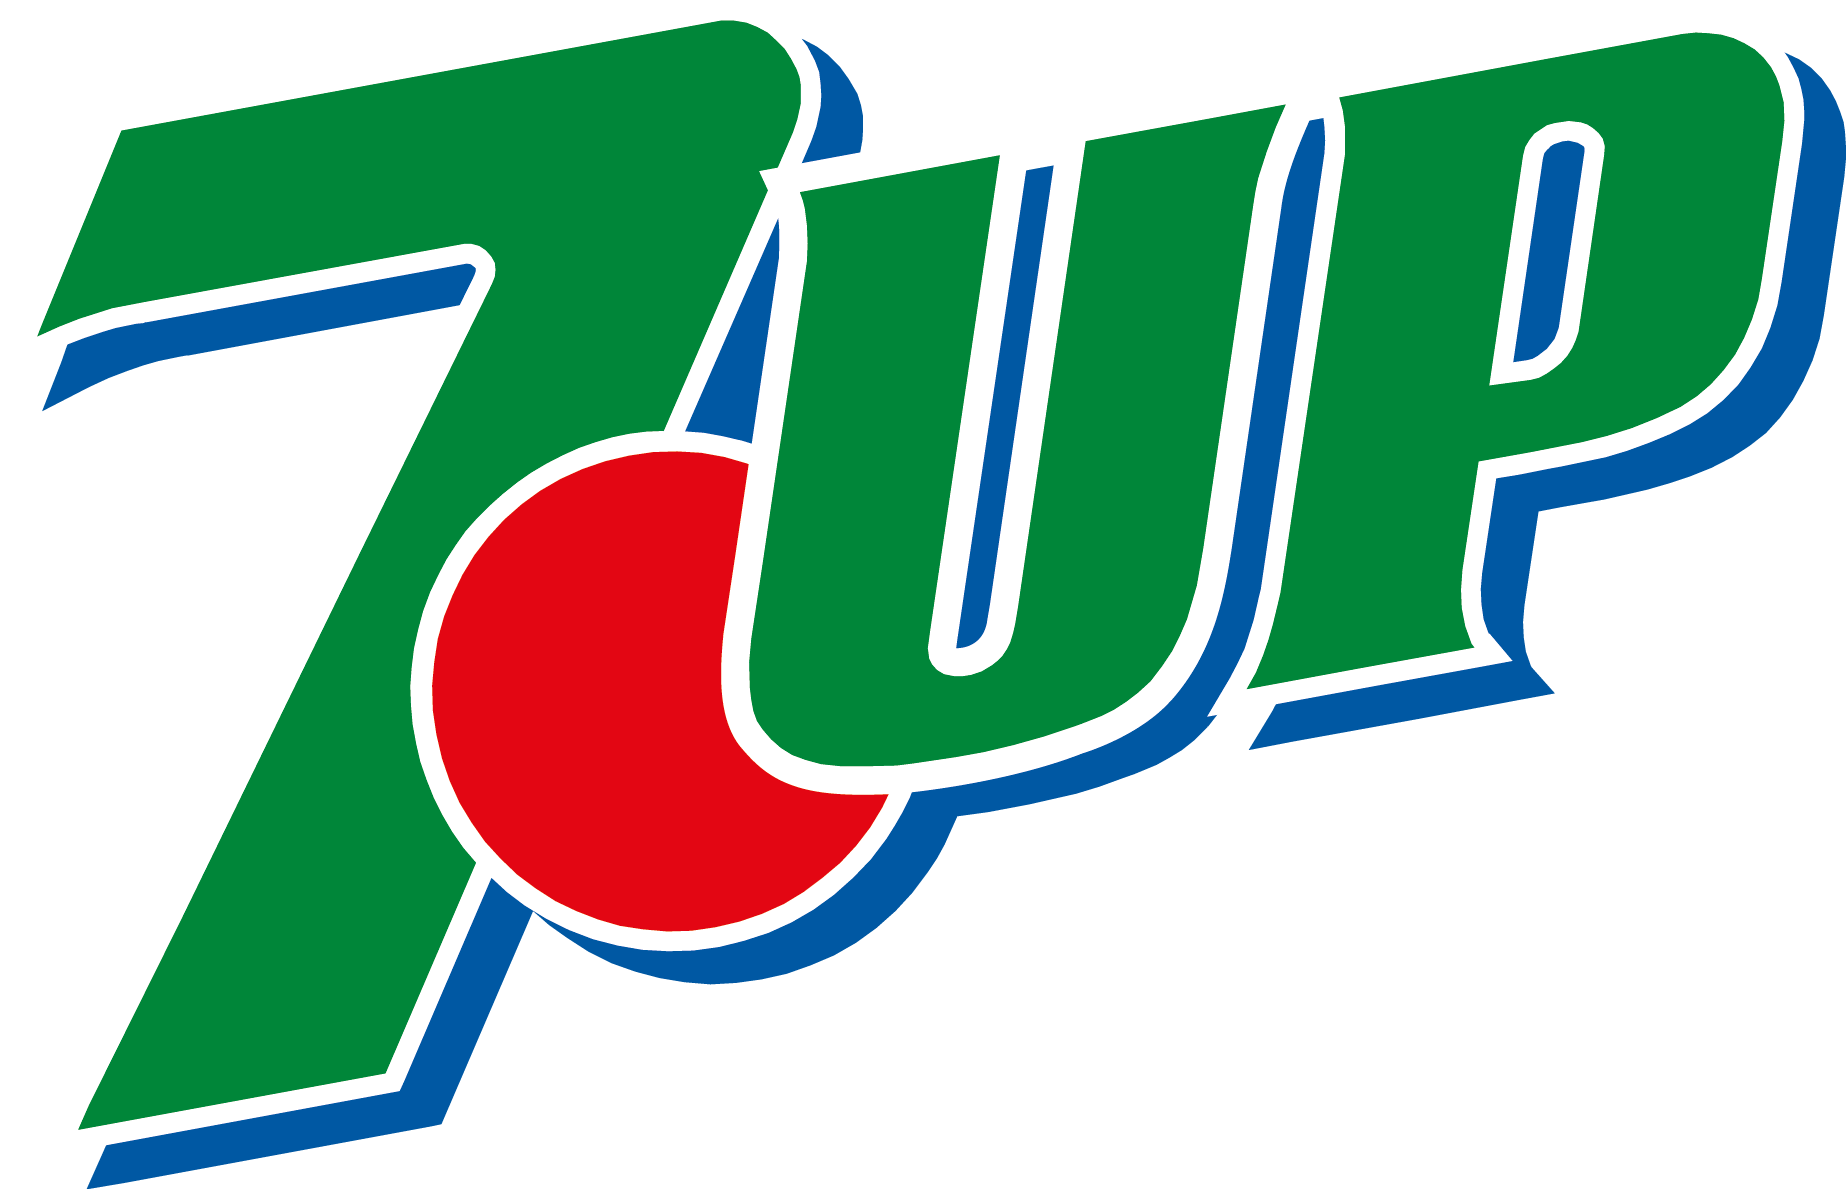 7Up Logo [Seven Up] png